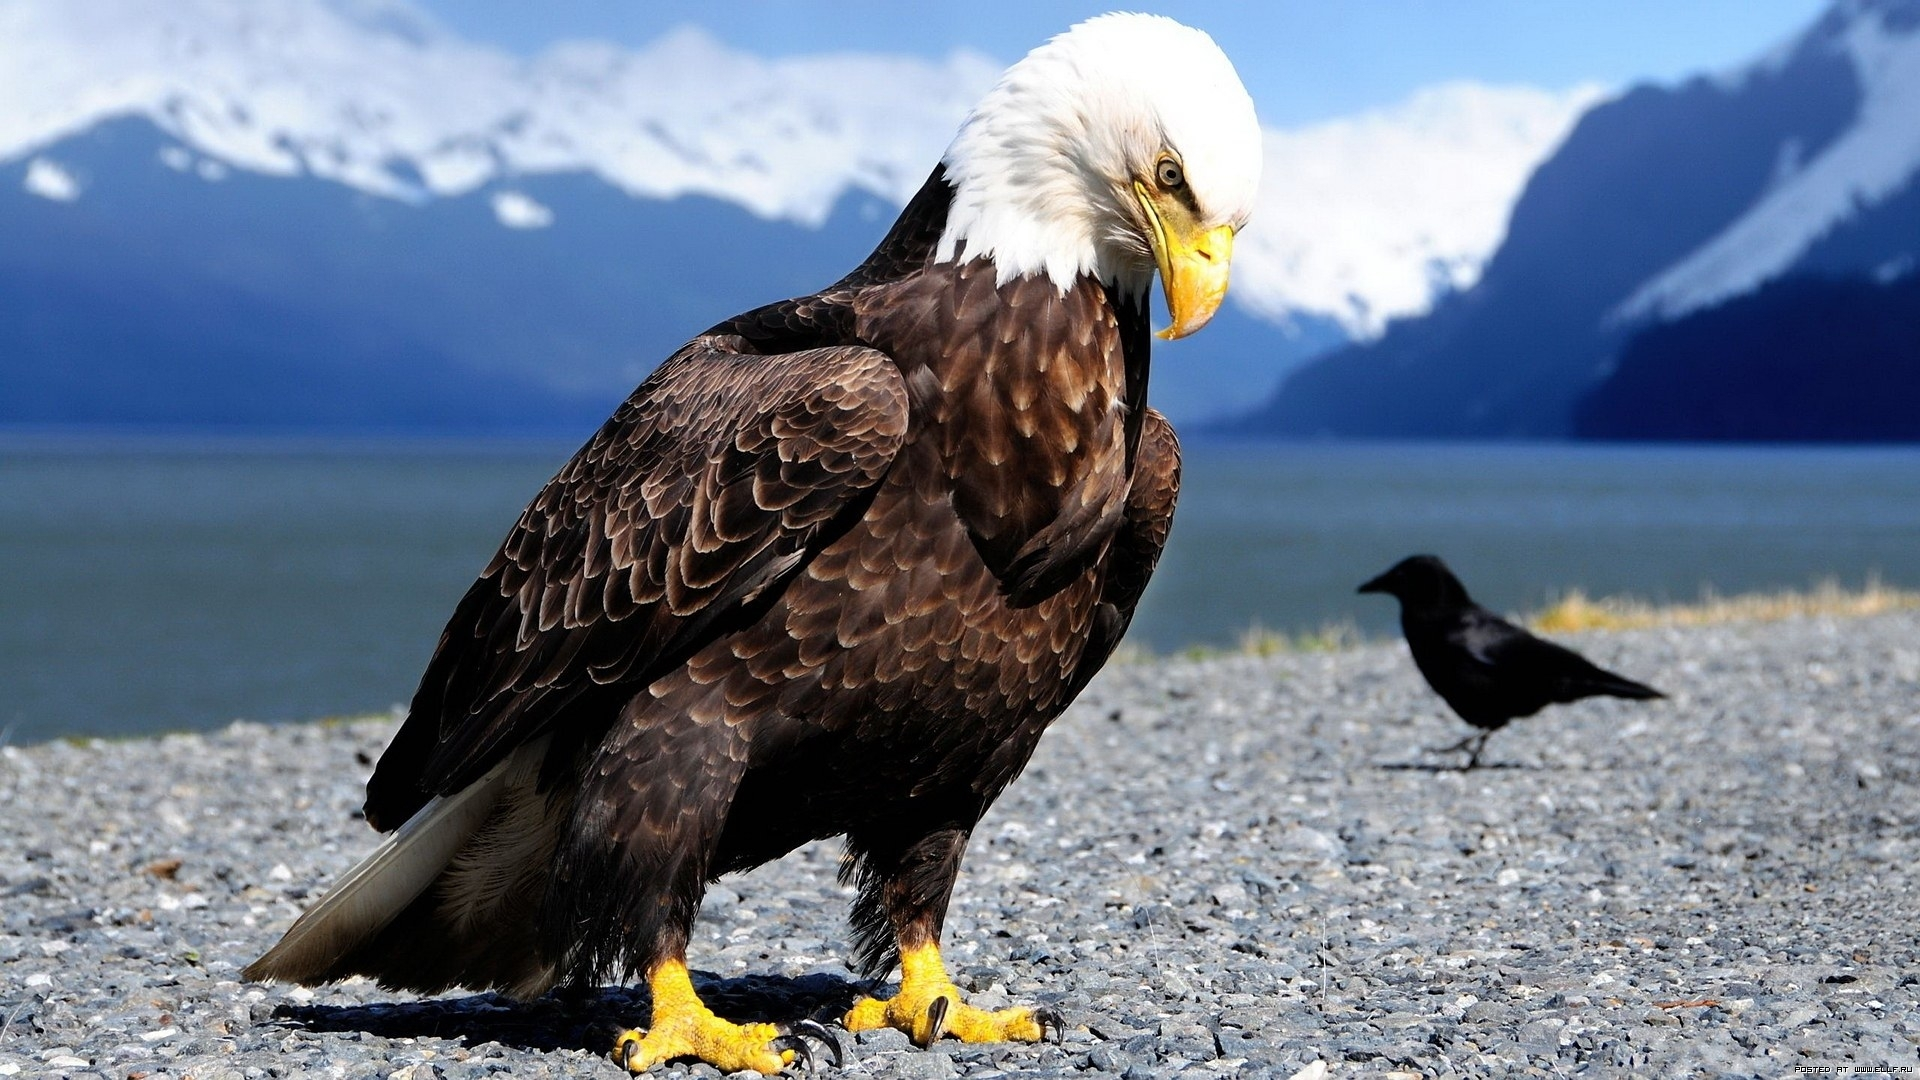 50280 download wallpaper Animals, Birds, Eagles screensavers and pictures for free